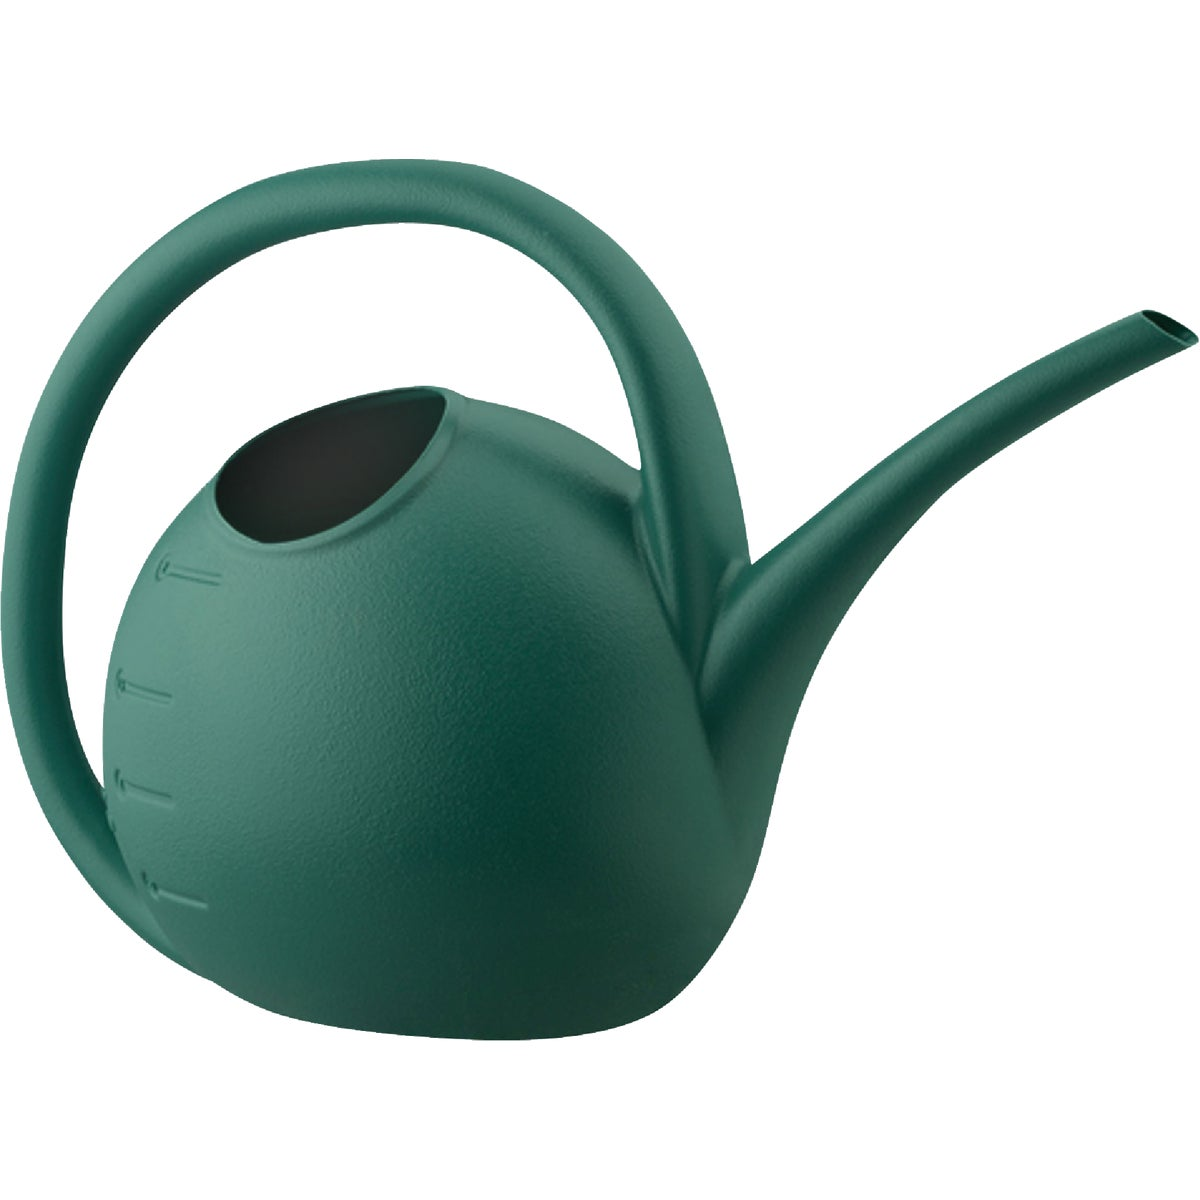 GAL GR POLY WATERING CAN - RZWC1G0B91 by Myers Industries Inc